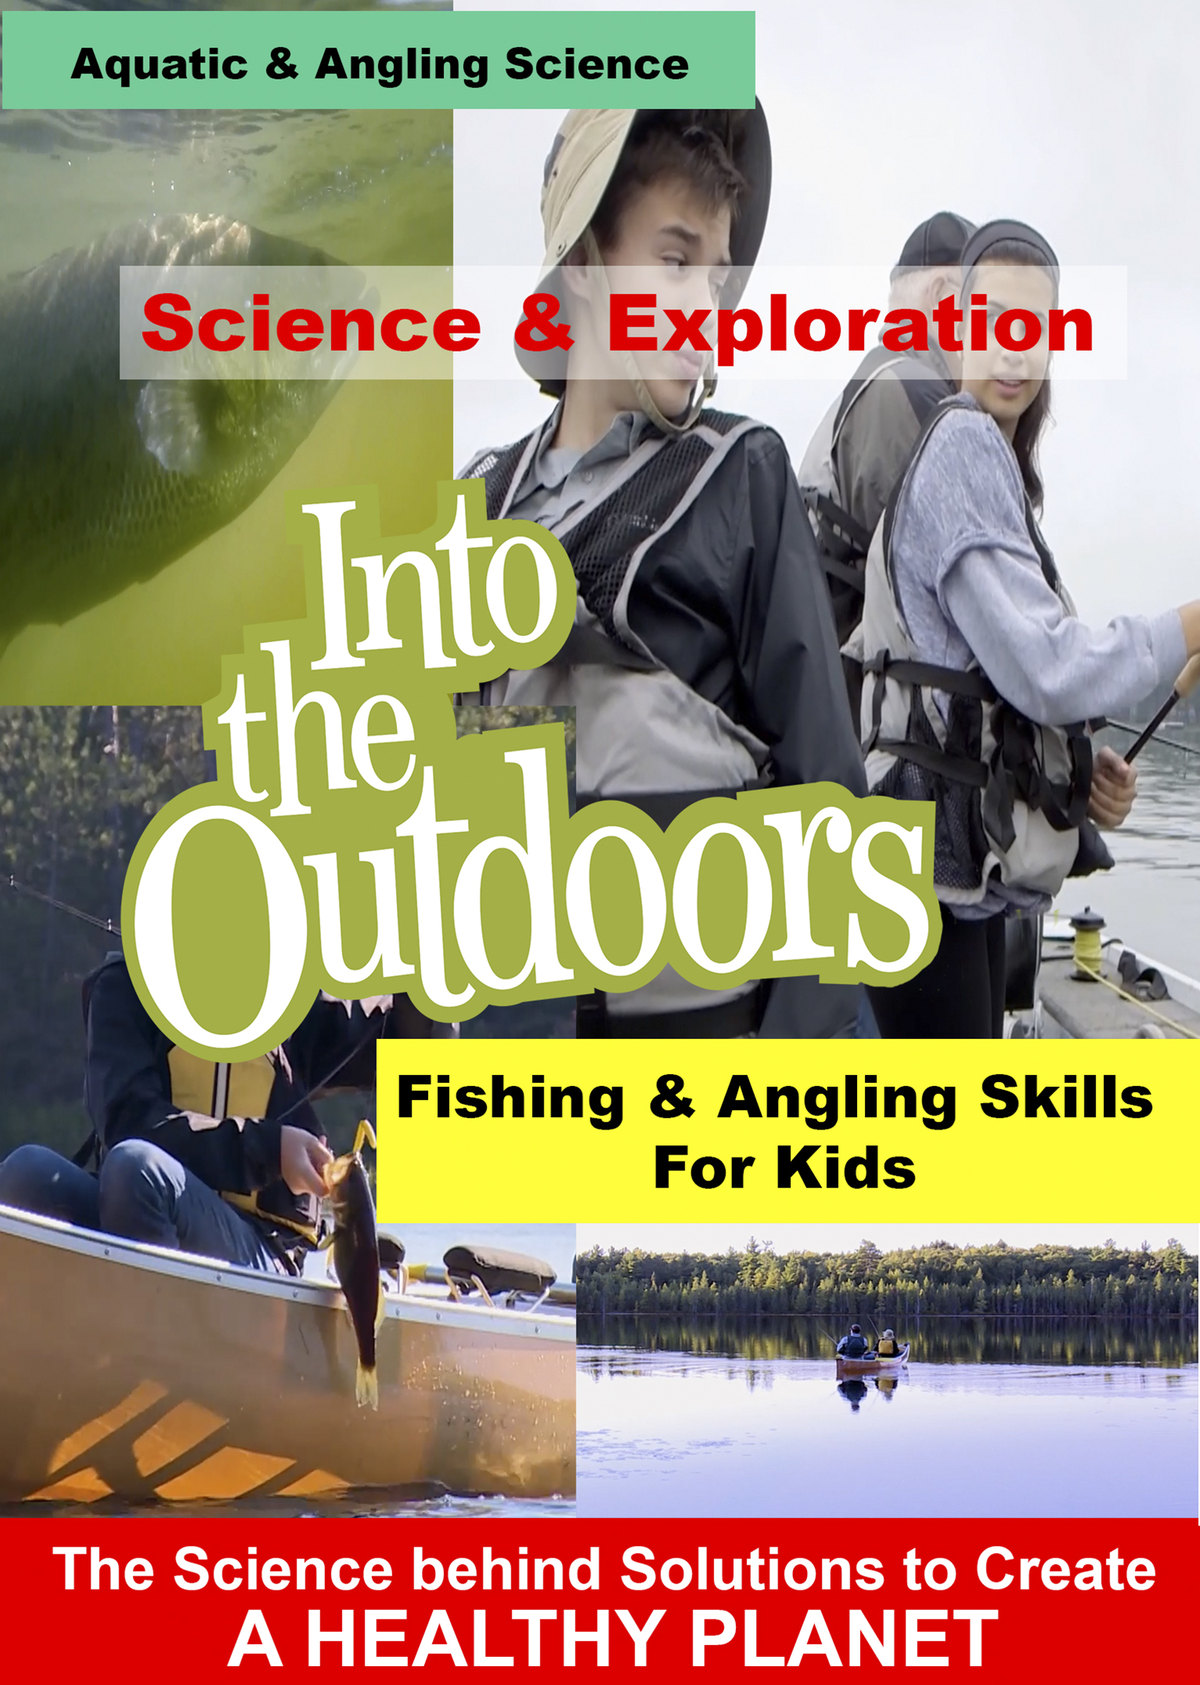 K5005 - Fishing & Angling Skills For Kids